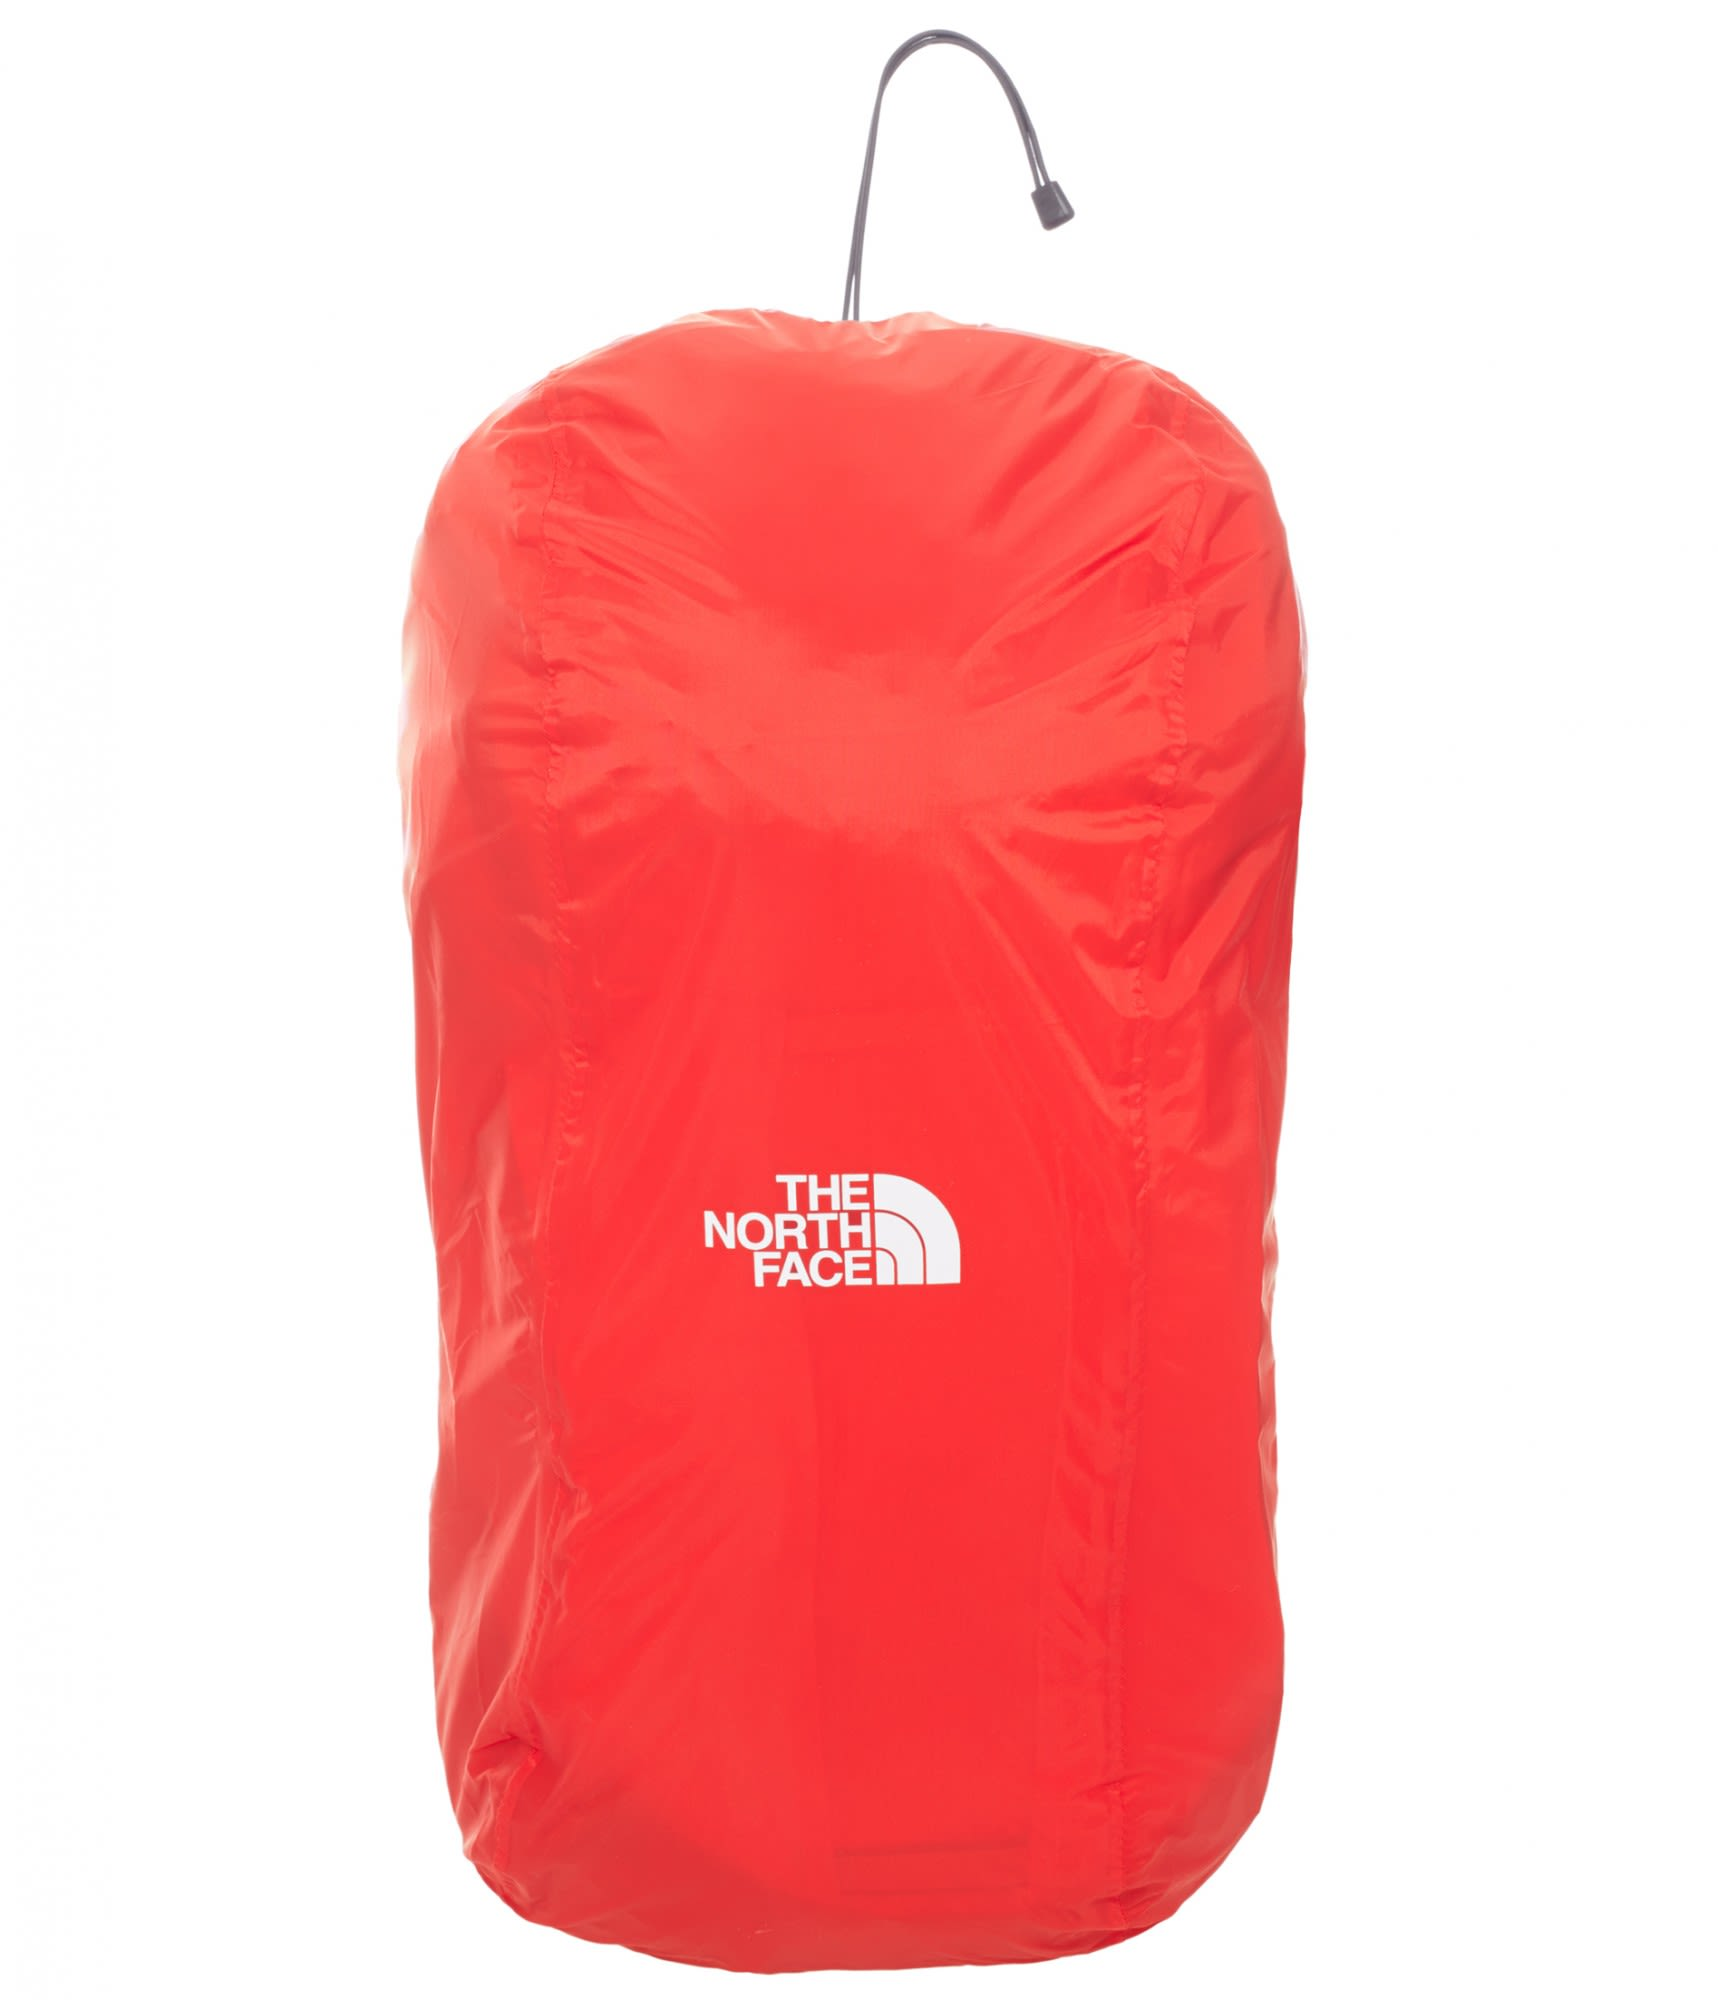 The North Face Pack Rain Cover XS Rot, 0-20l -Farbe TNF Red, 0-20l